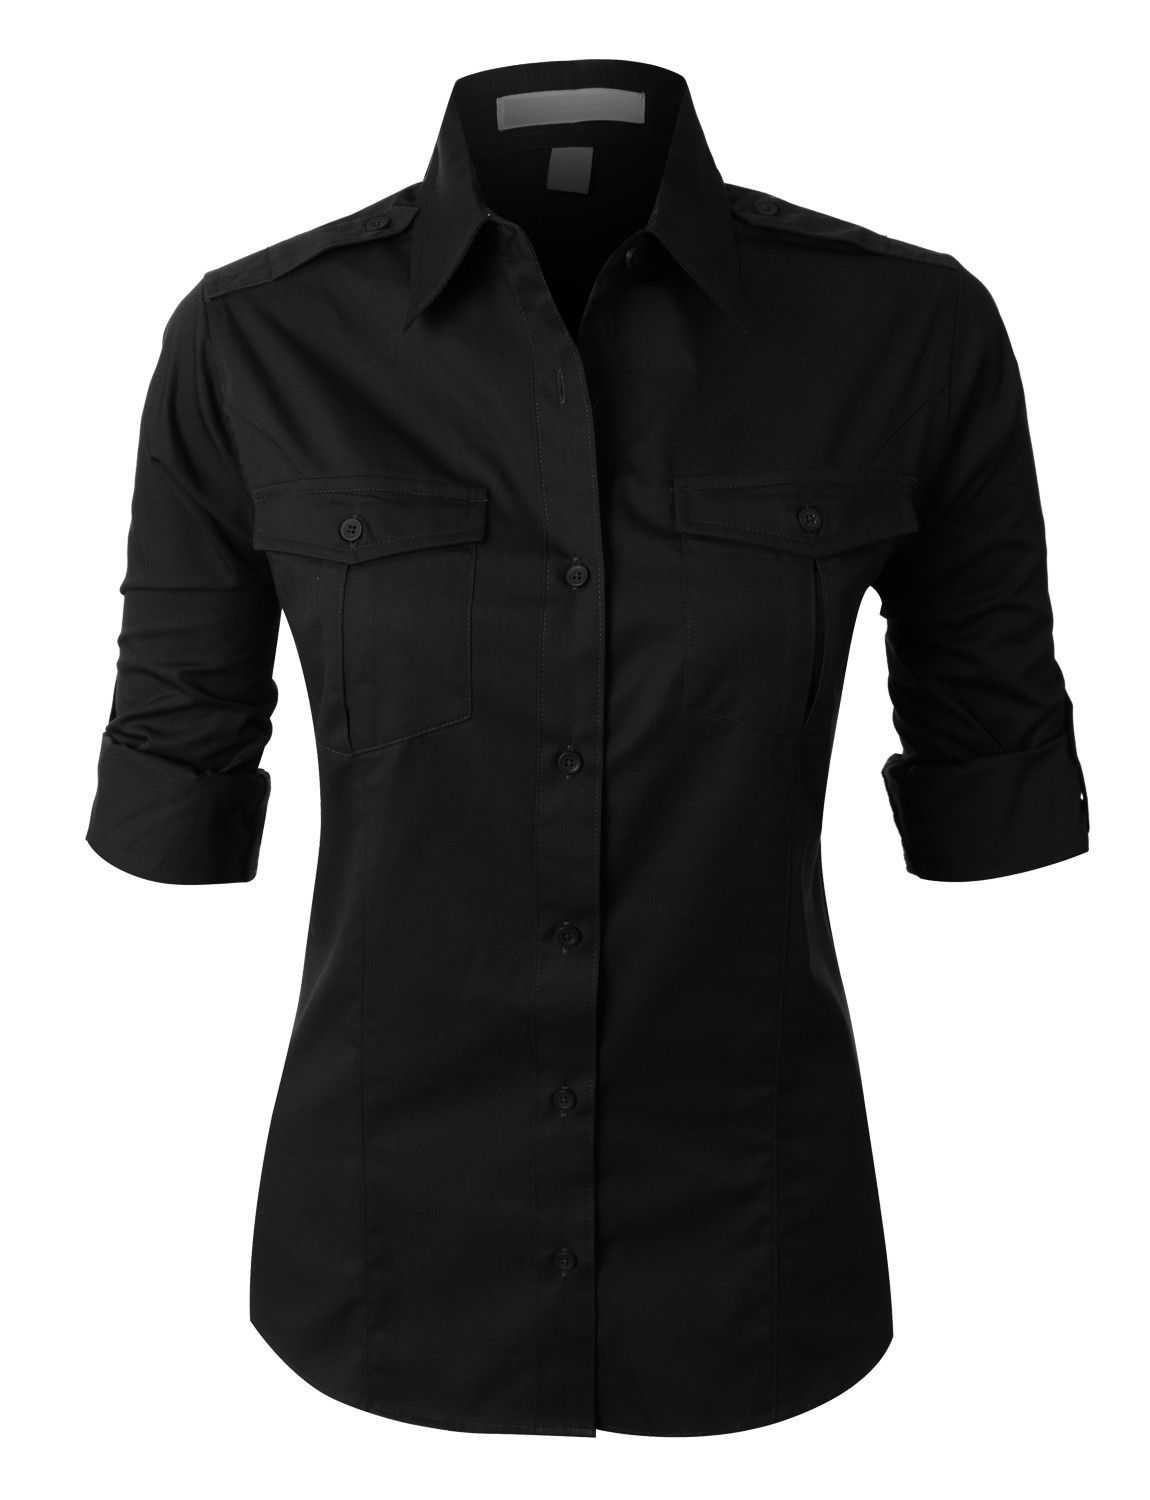 Black t shirt rolled up sleeves - Black T Shirt Rolled Up Sleeves 43